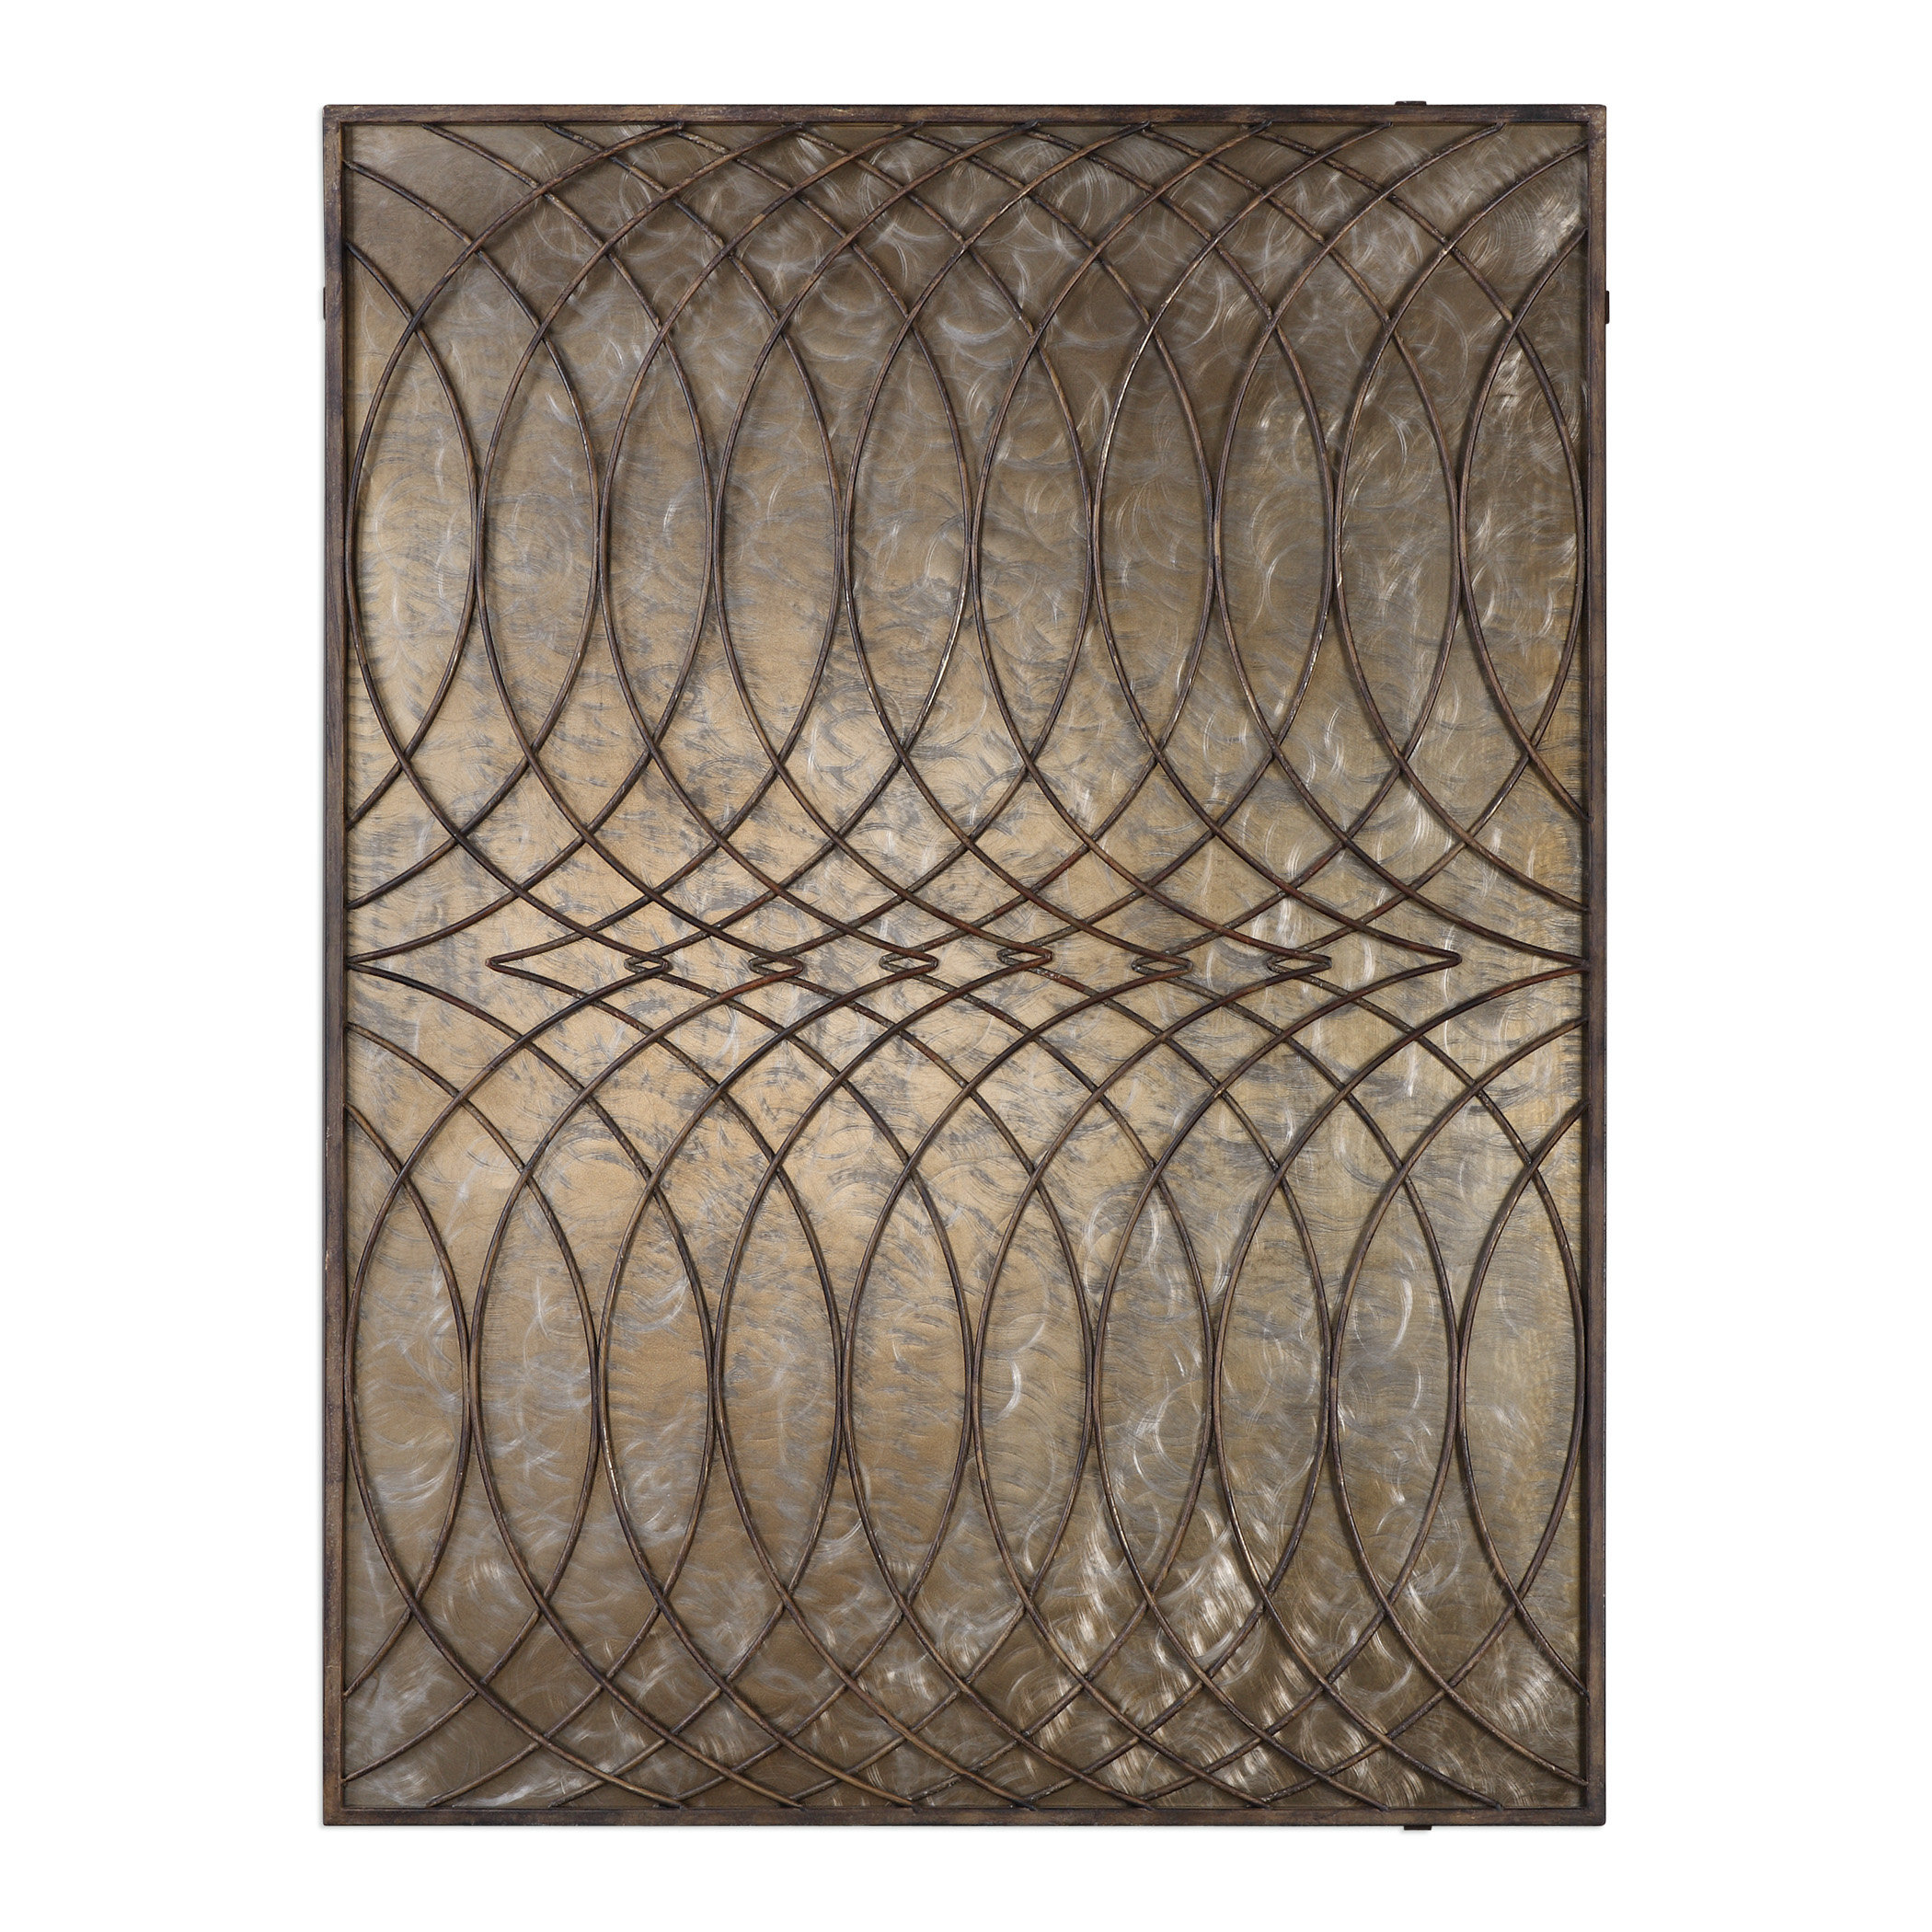 Formal Traditional Wall Decor | Wayfair Intended For Alvis Traditional Metal Wall Decor (View 20 of 30)